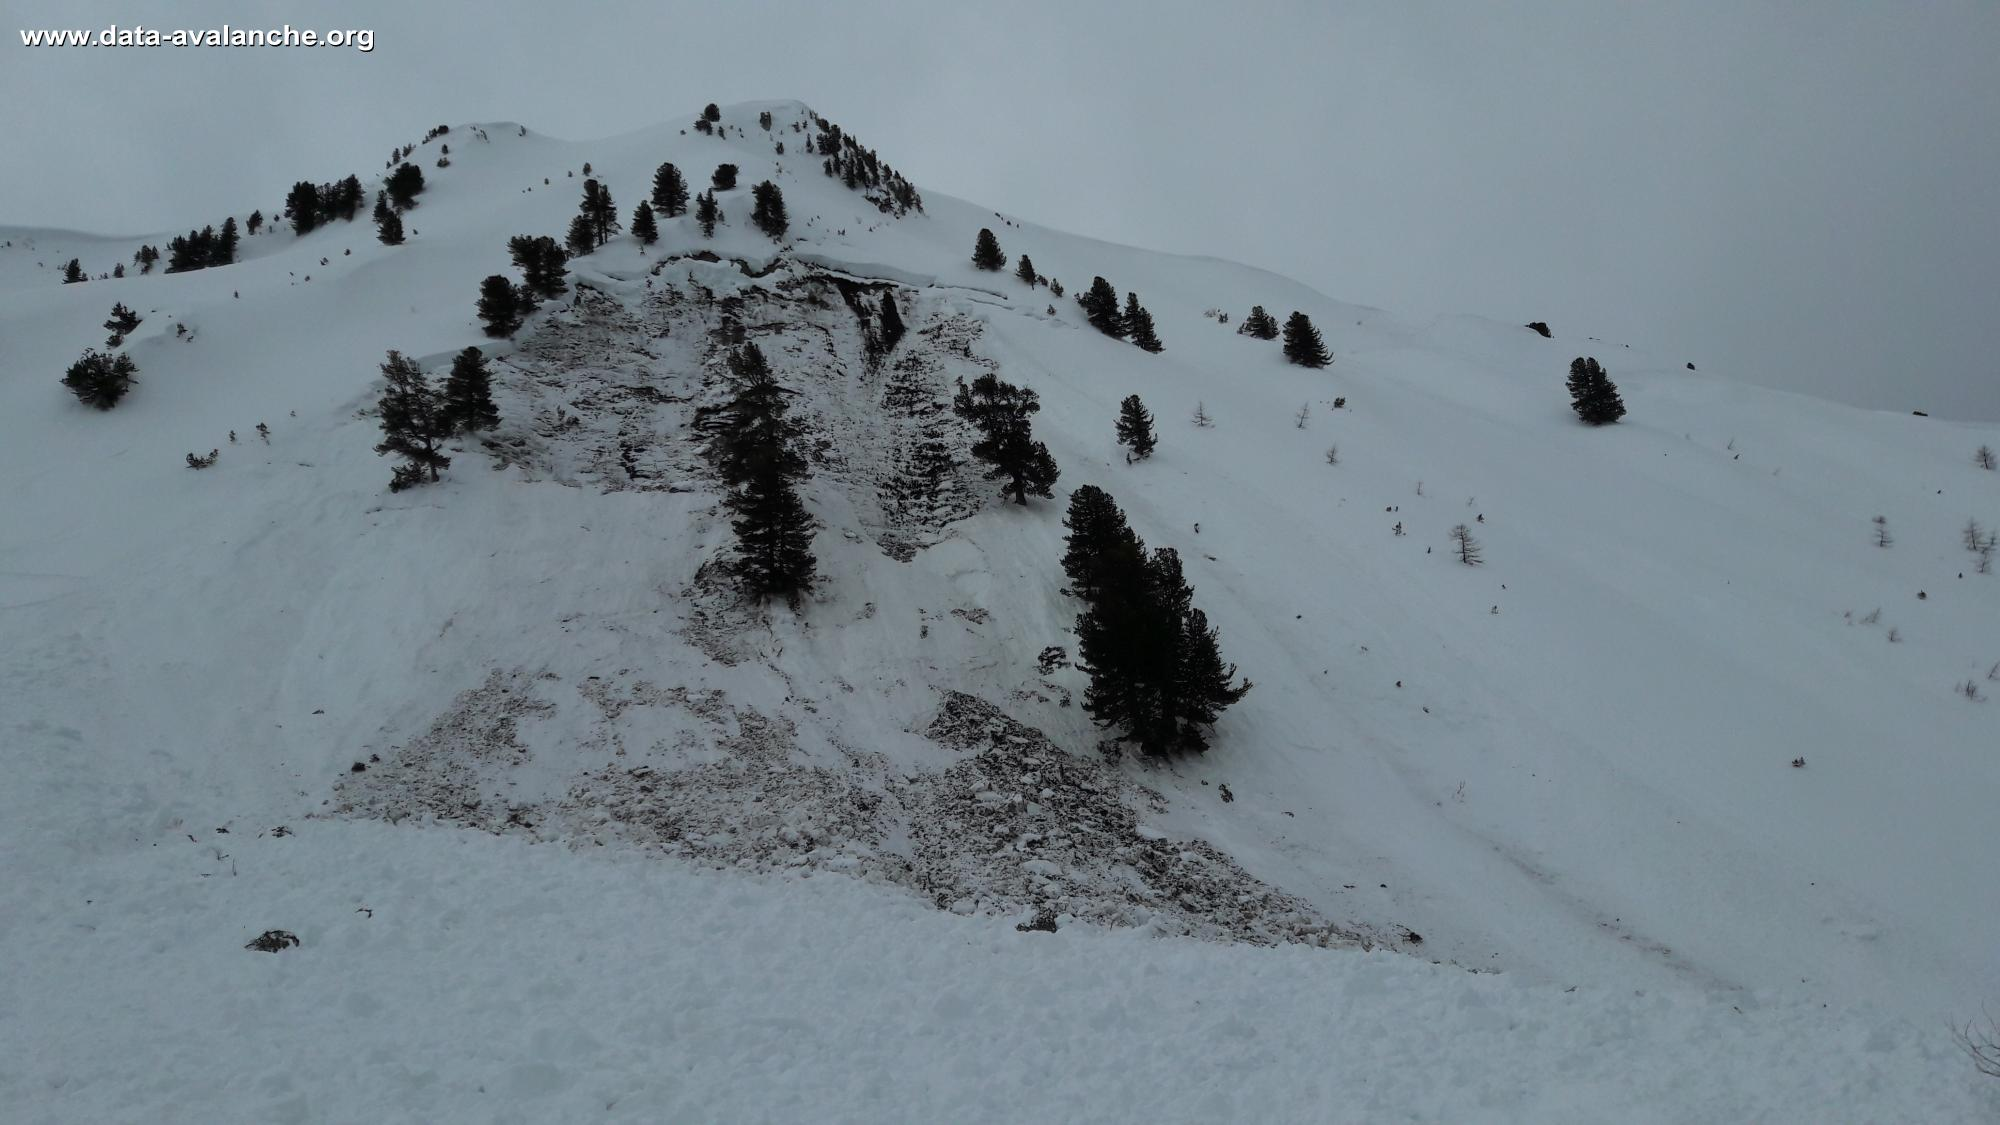 Avalanche Vanoise, secteur Mont du Saint-Jacques, La Plagne - Photo 1